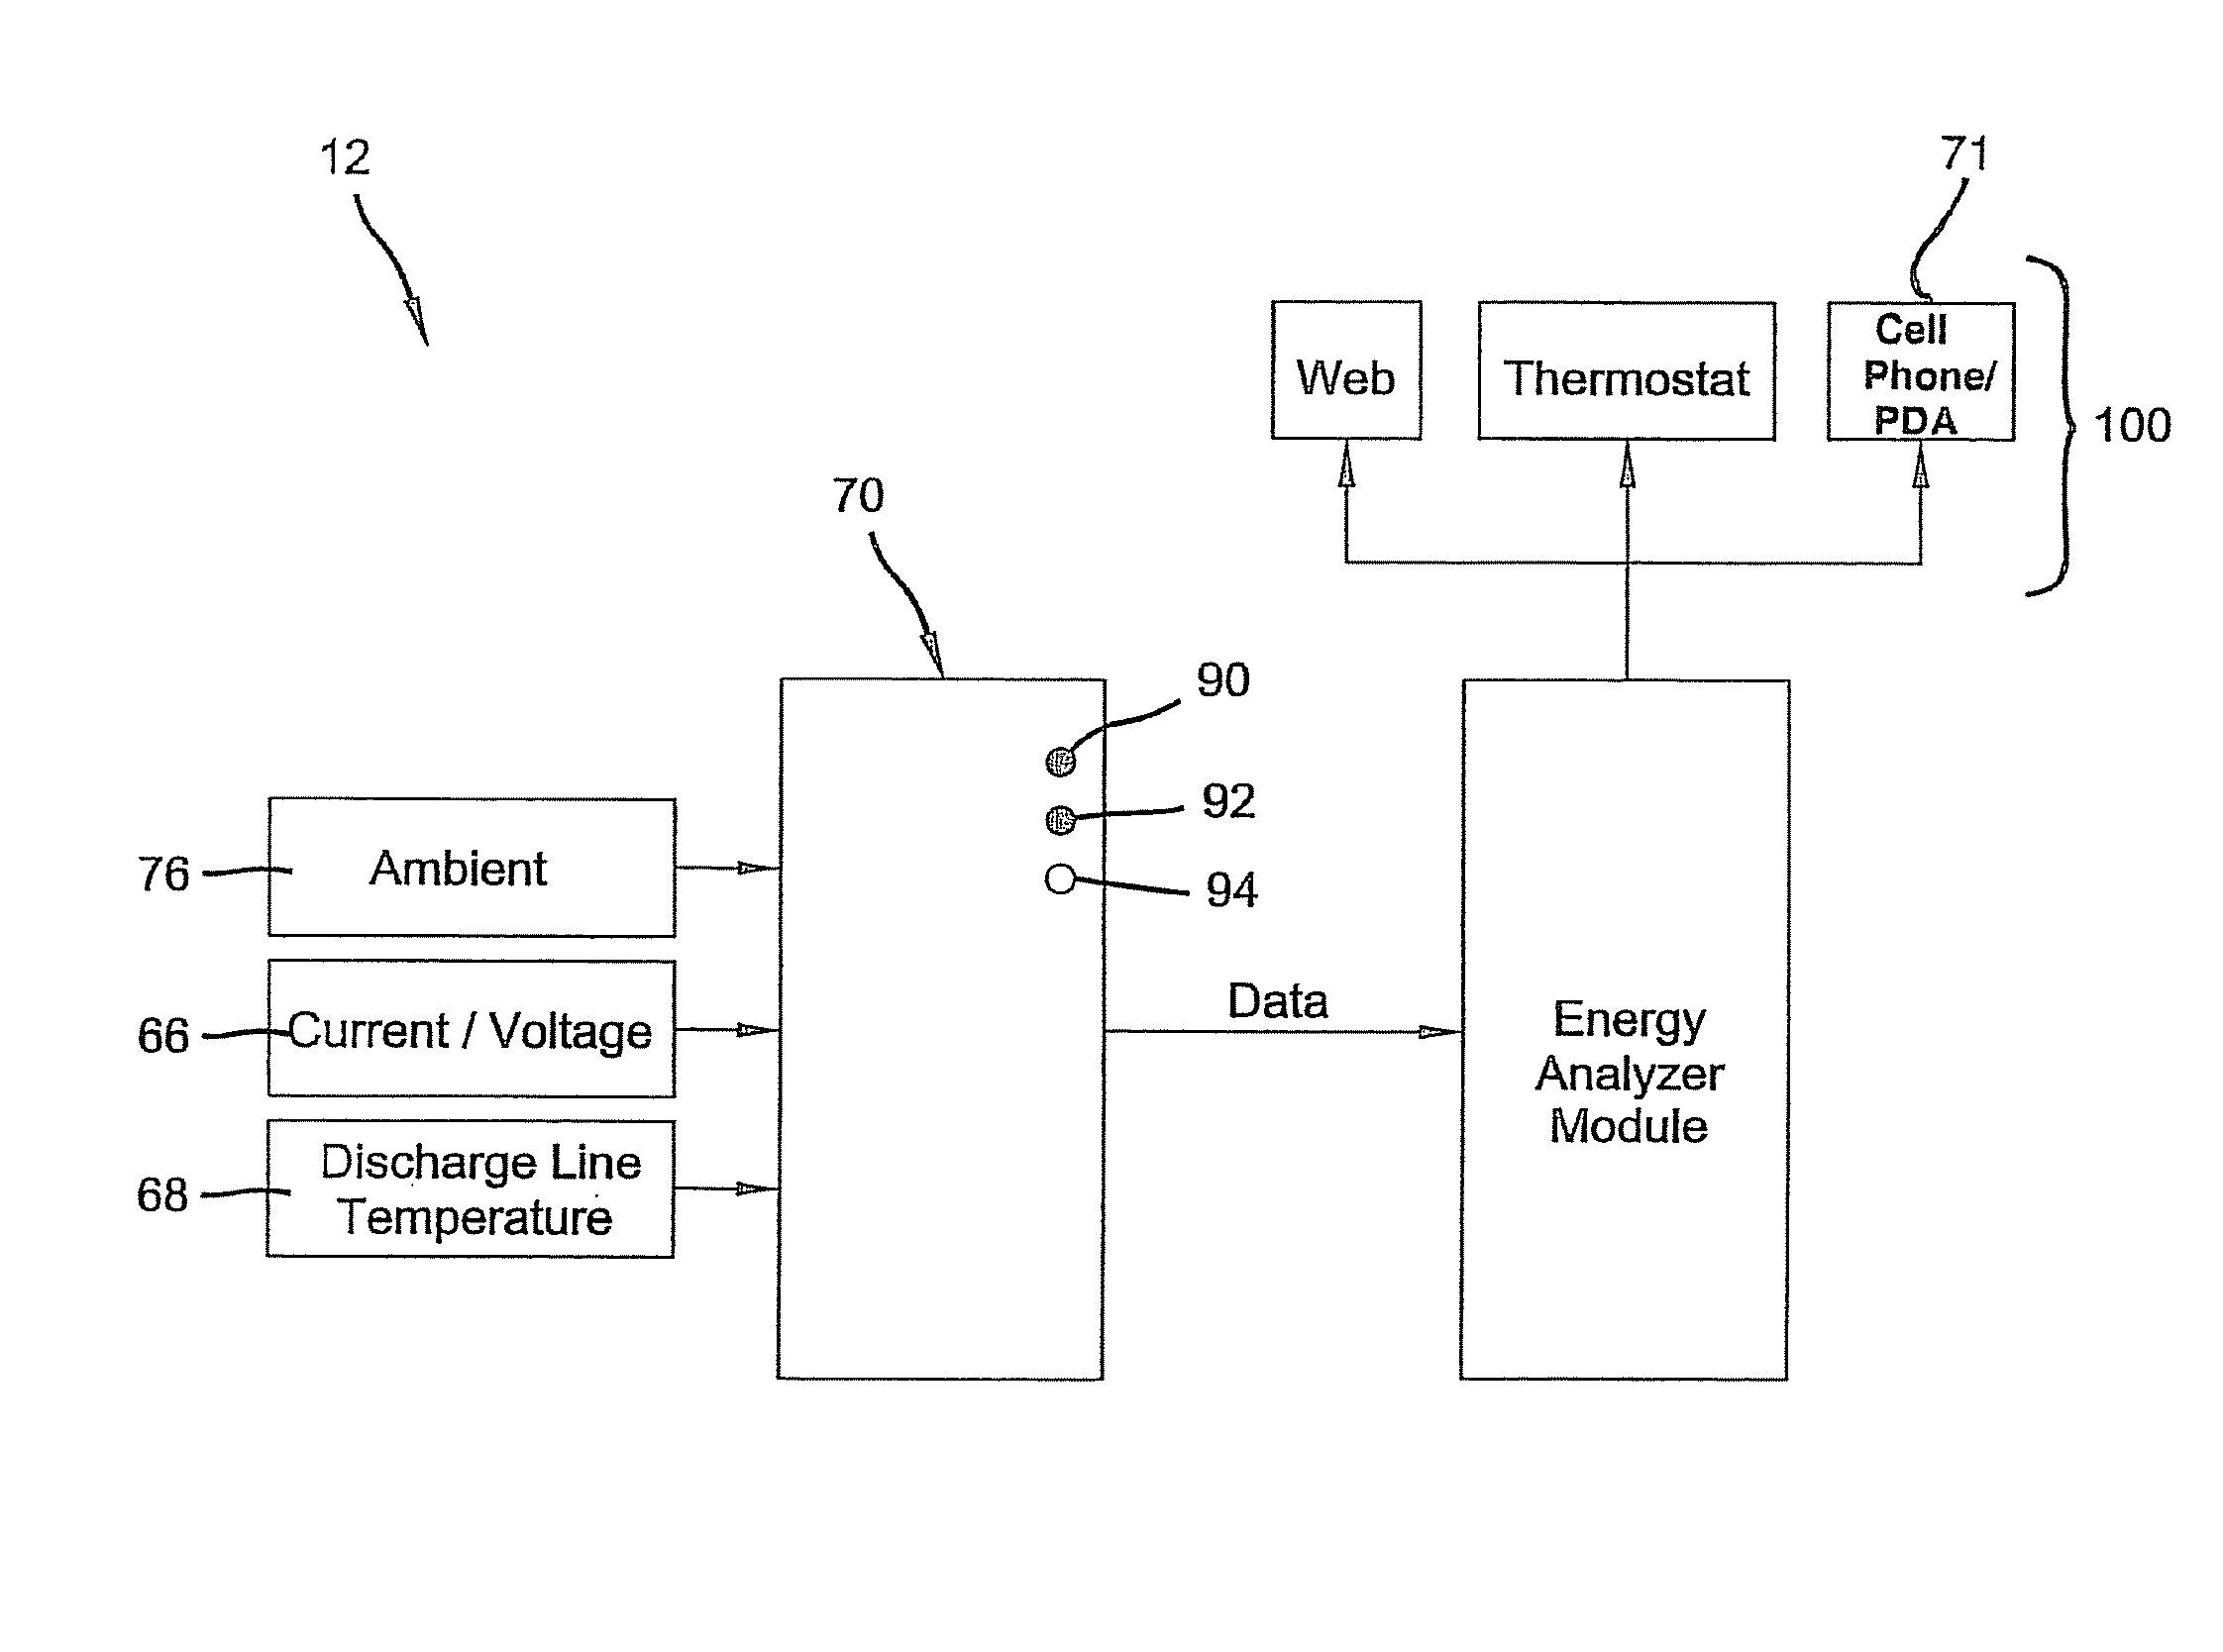 patent us 9,669,498 b2Control System For Controlling Multiple Compressors Google Patents #11